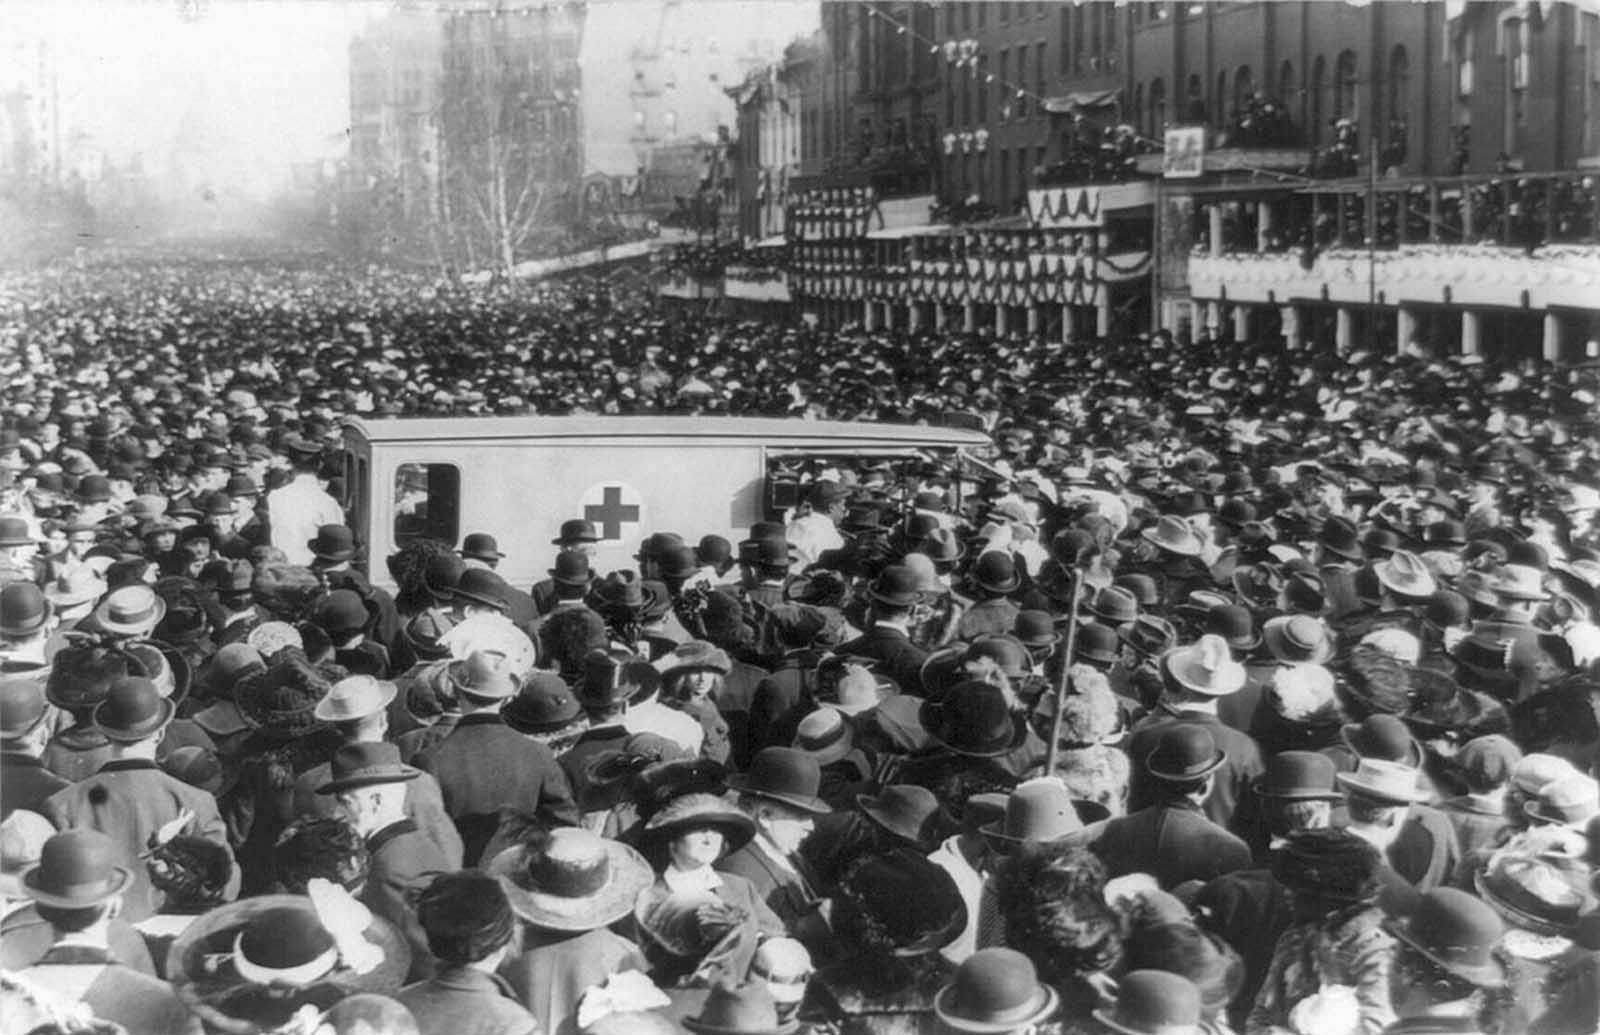 The crowd surrounds and slows a Red Cross ambulance during the Women's suffrage procession, on March 3, 1913. Dozens of marchers were injured during the march, shoved and tripped by spectators.